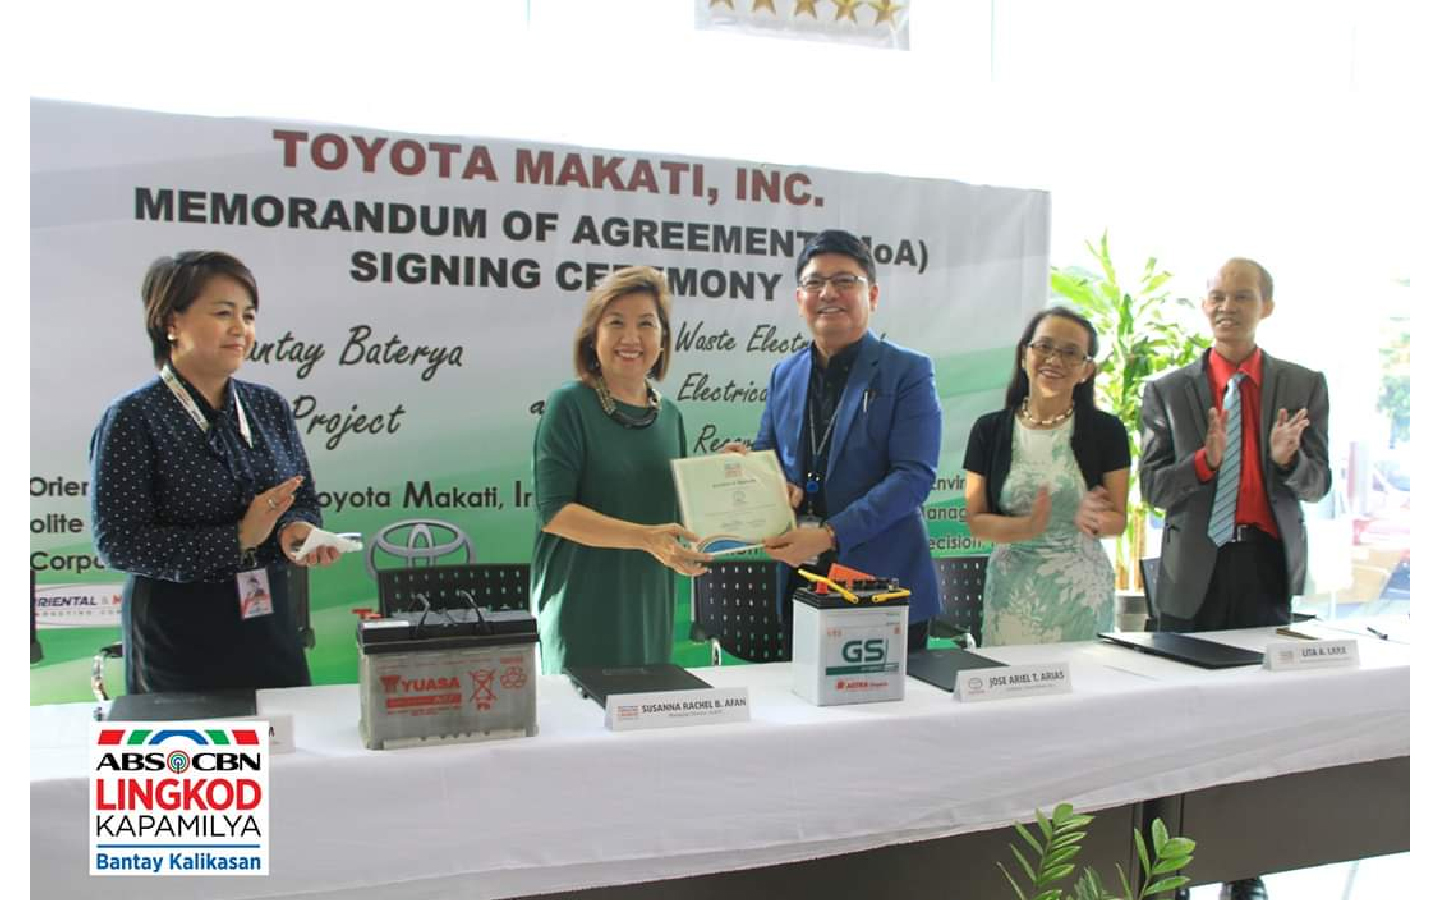 ALKFI managing director Susan Afan (2nd from left) with Toyota Makati Inc. HR and Admin manager Josephine Lim and president Jose Ariel Arias, ALKFI chief finance and services officer Lita Lara and Envirocare Management Precision Inc. VP Reno Entico